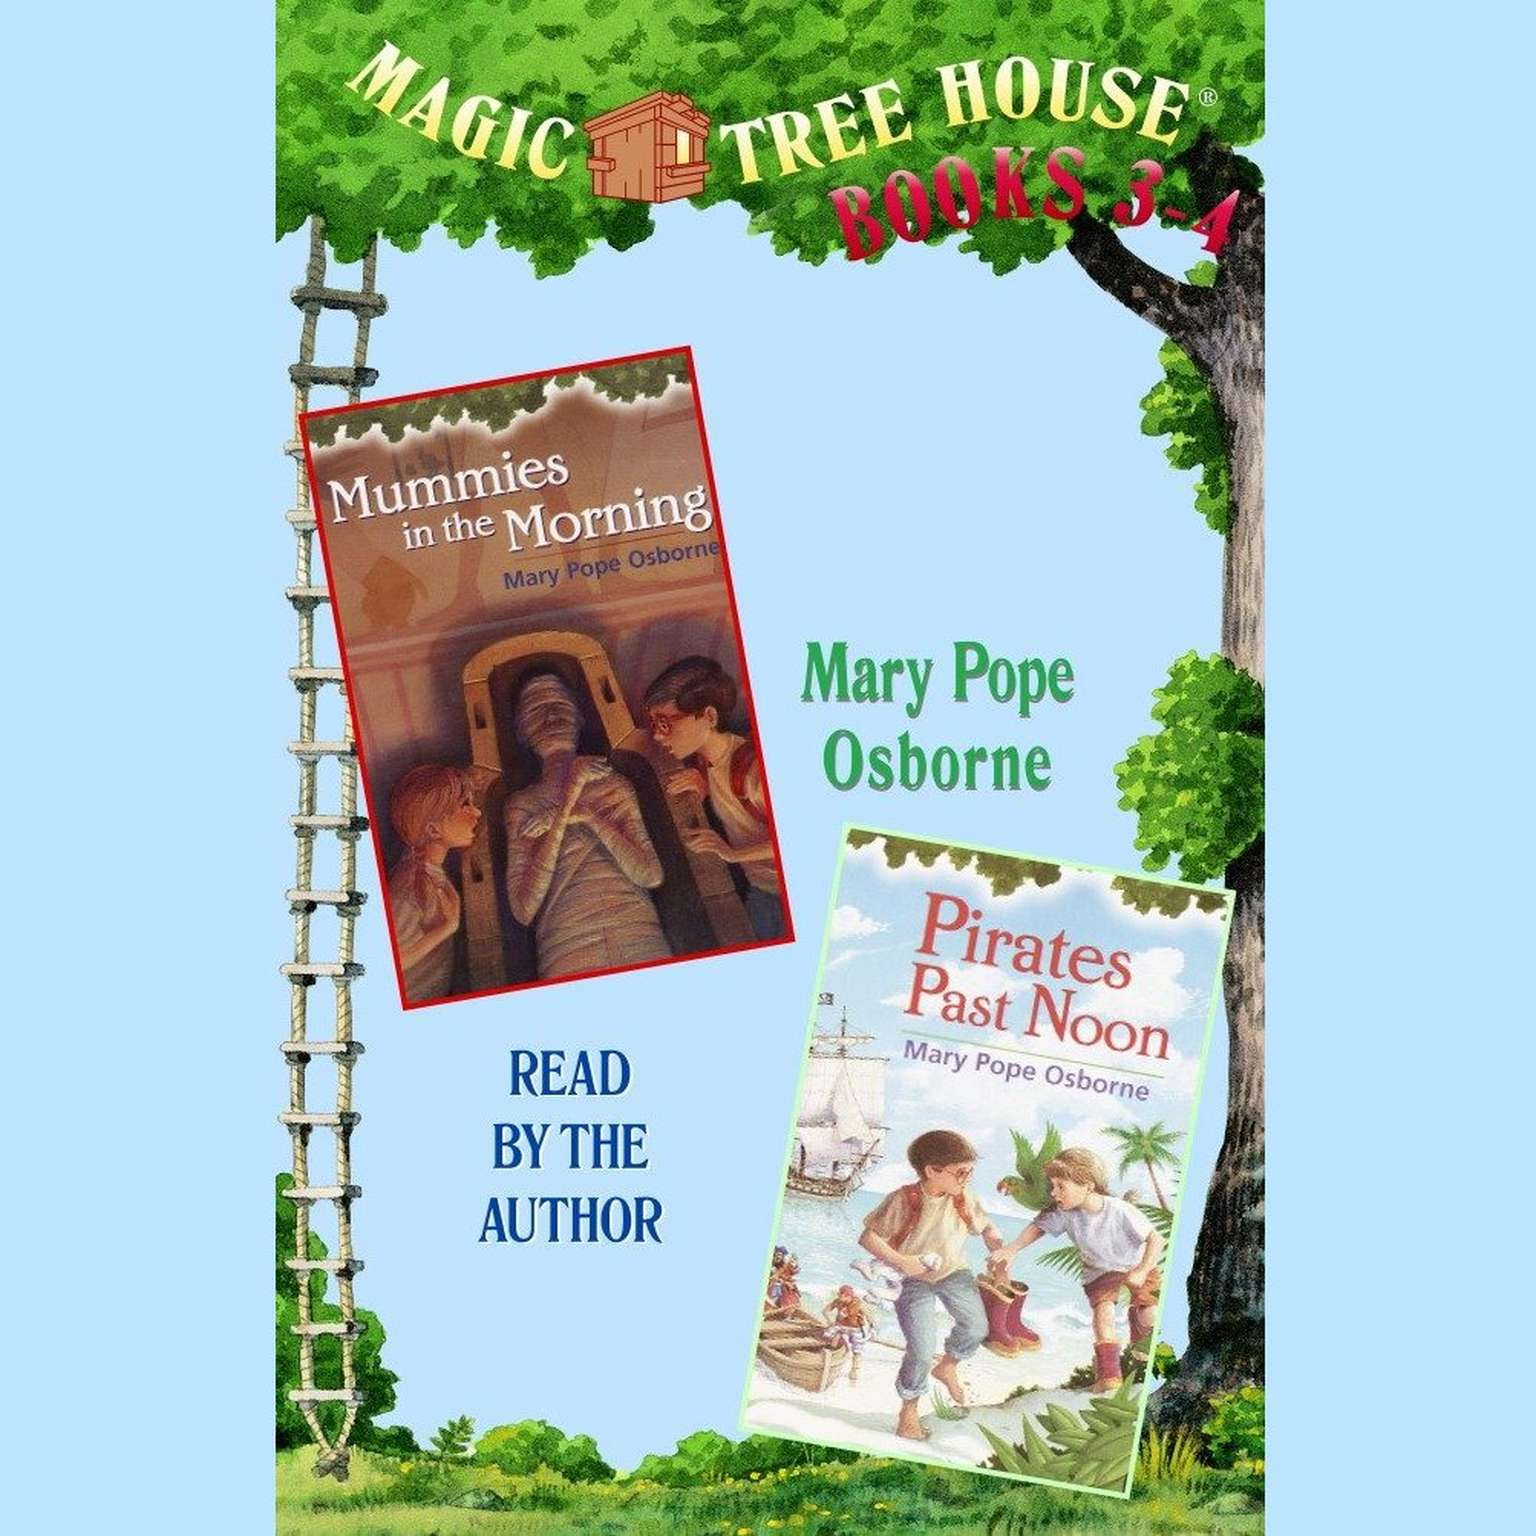 Magic Tree House Books 3 And 4